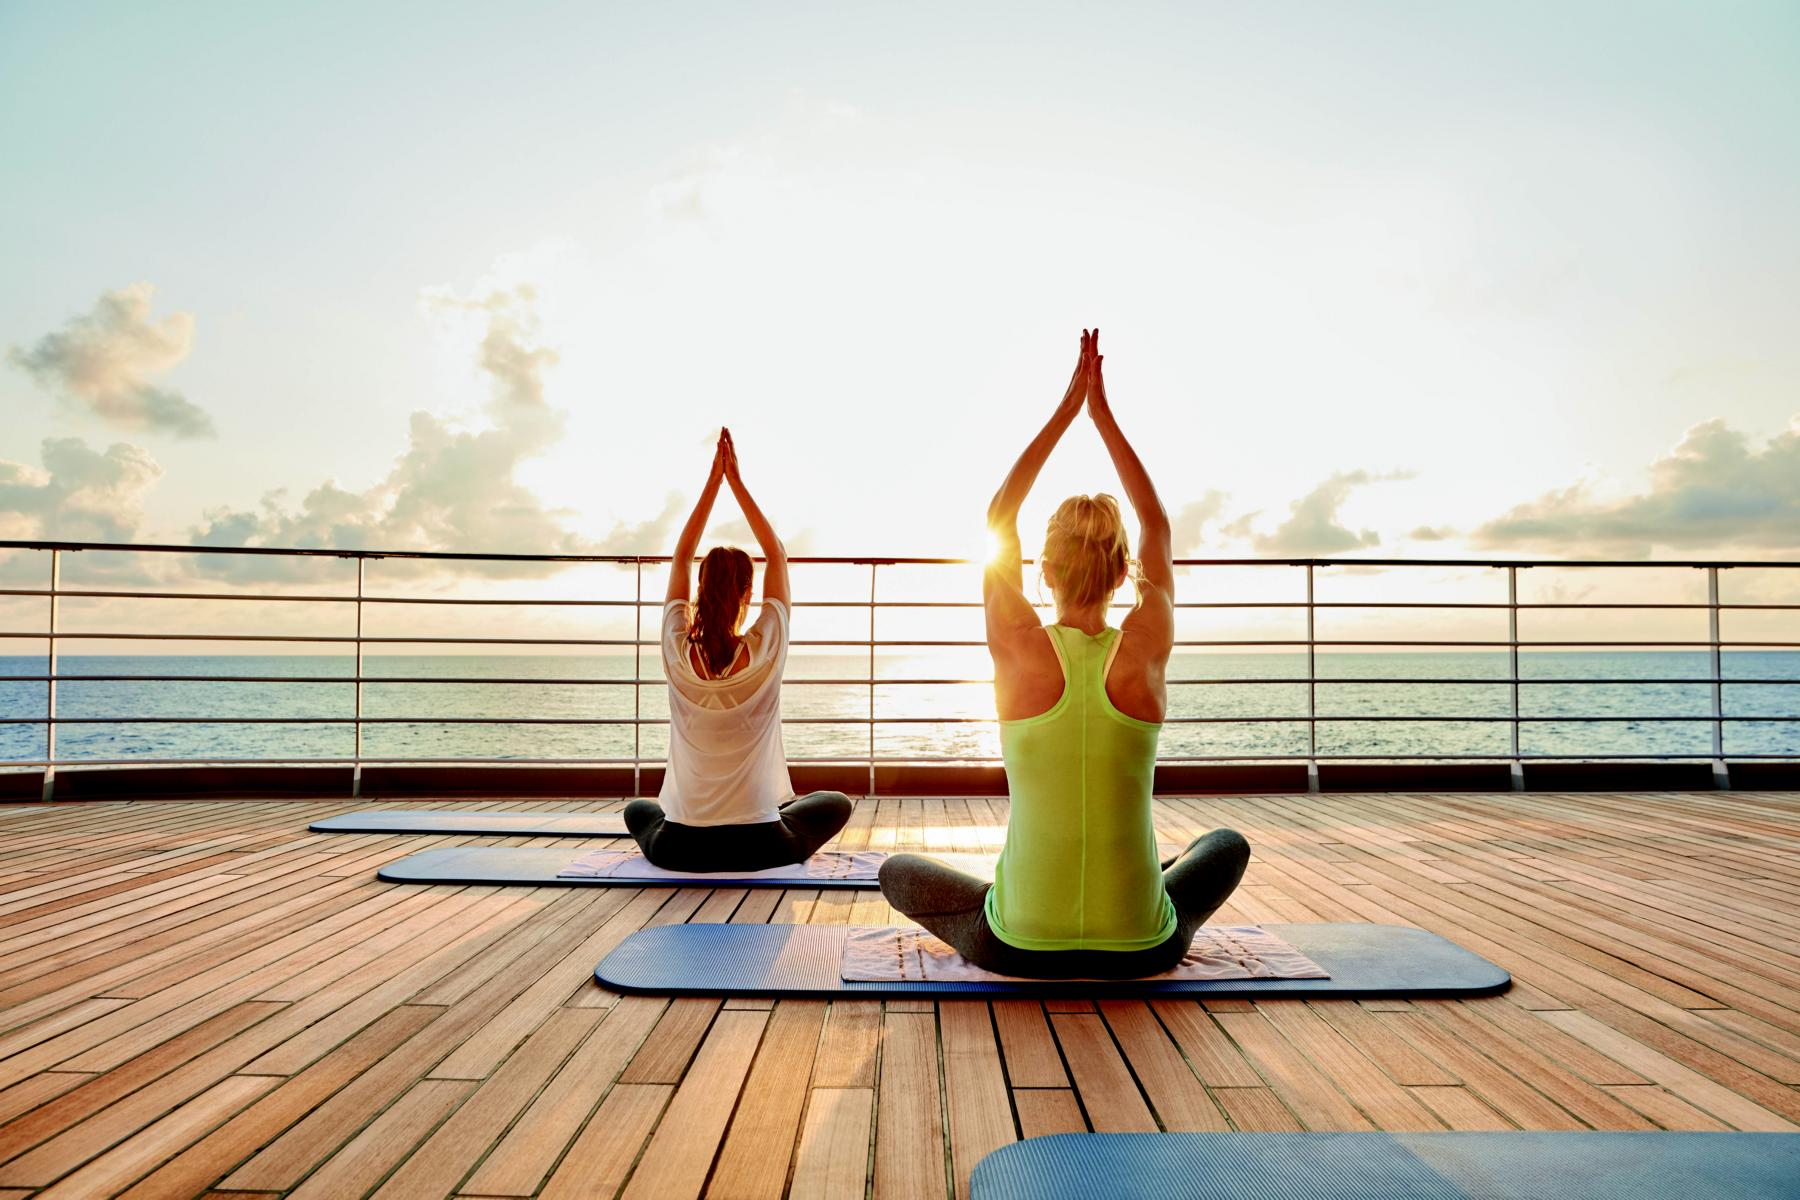 Yoga an Deck der MS Europa 2